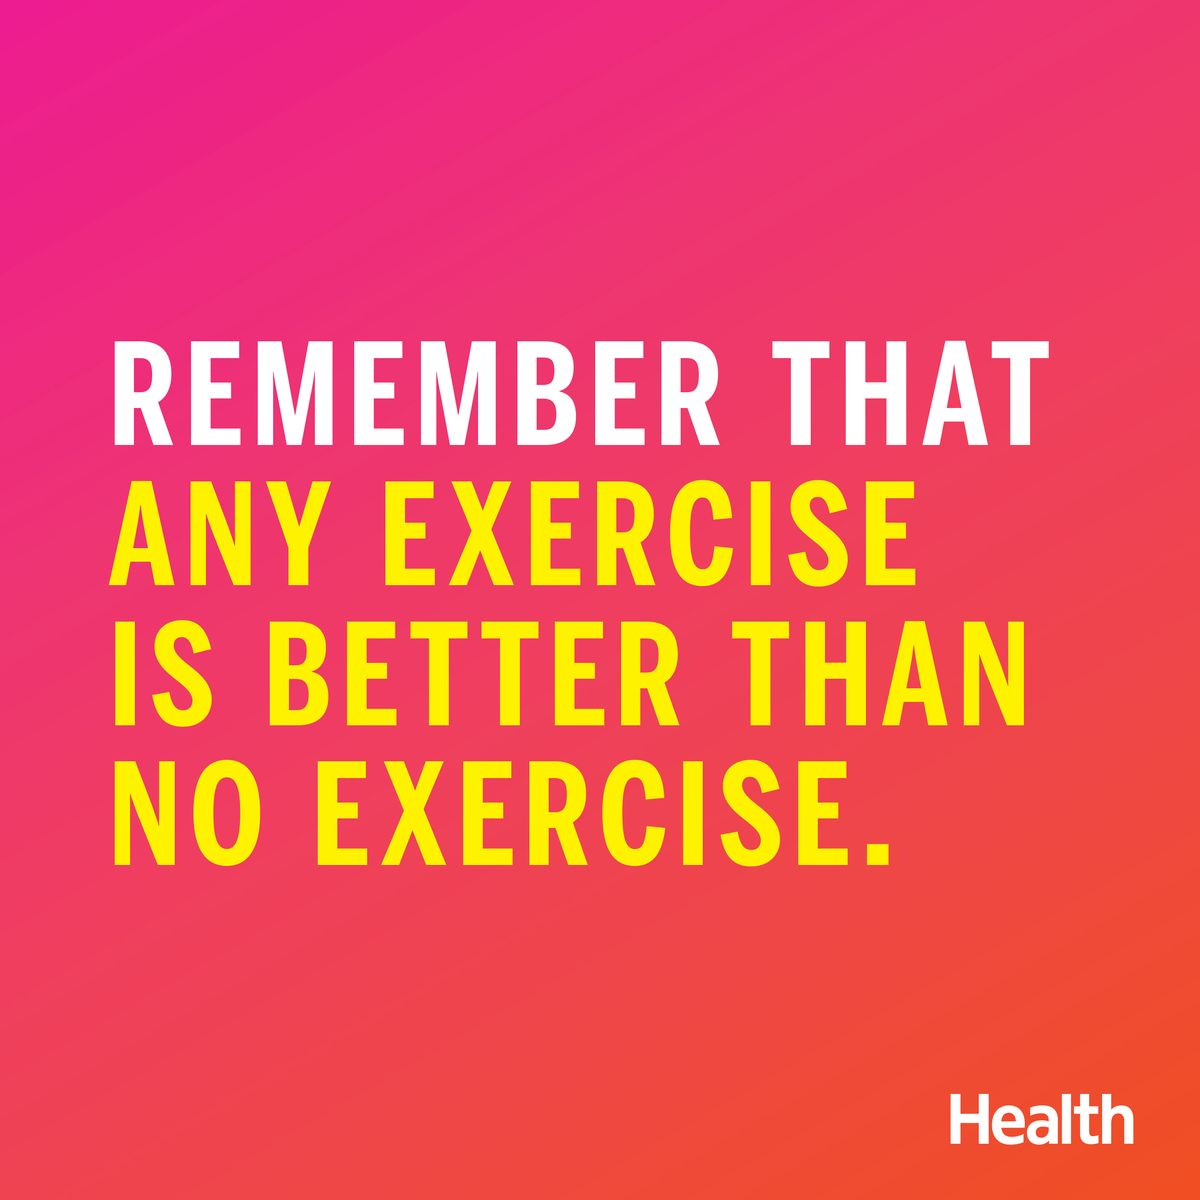 """Some Wednesday Fitspiration! Whether you're trying to drop a few pounds or looking to train for your first 5K, embrace these 24 motivating health quotes and sayings to keep you on track. 